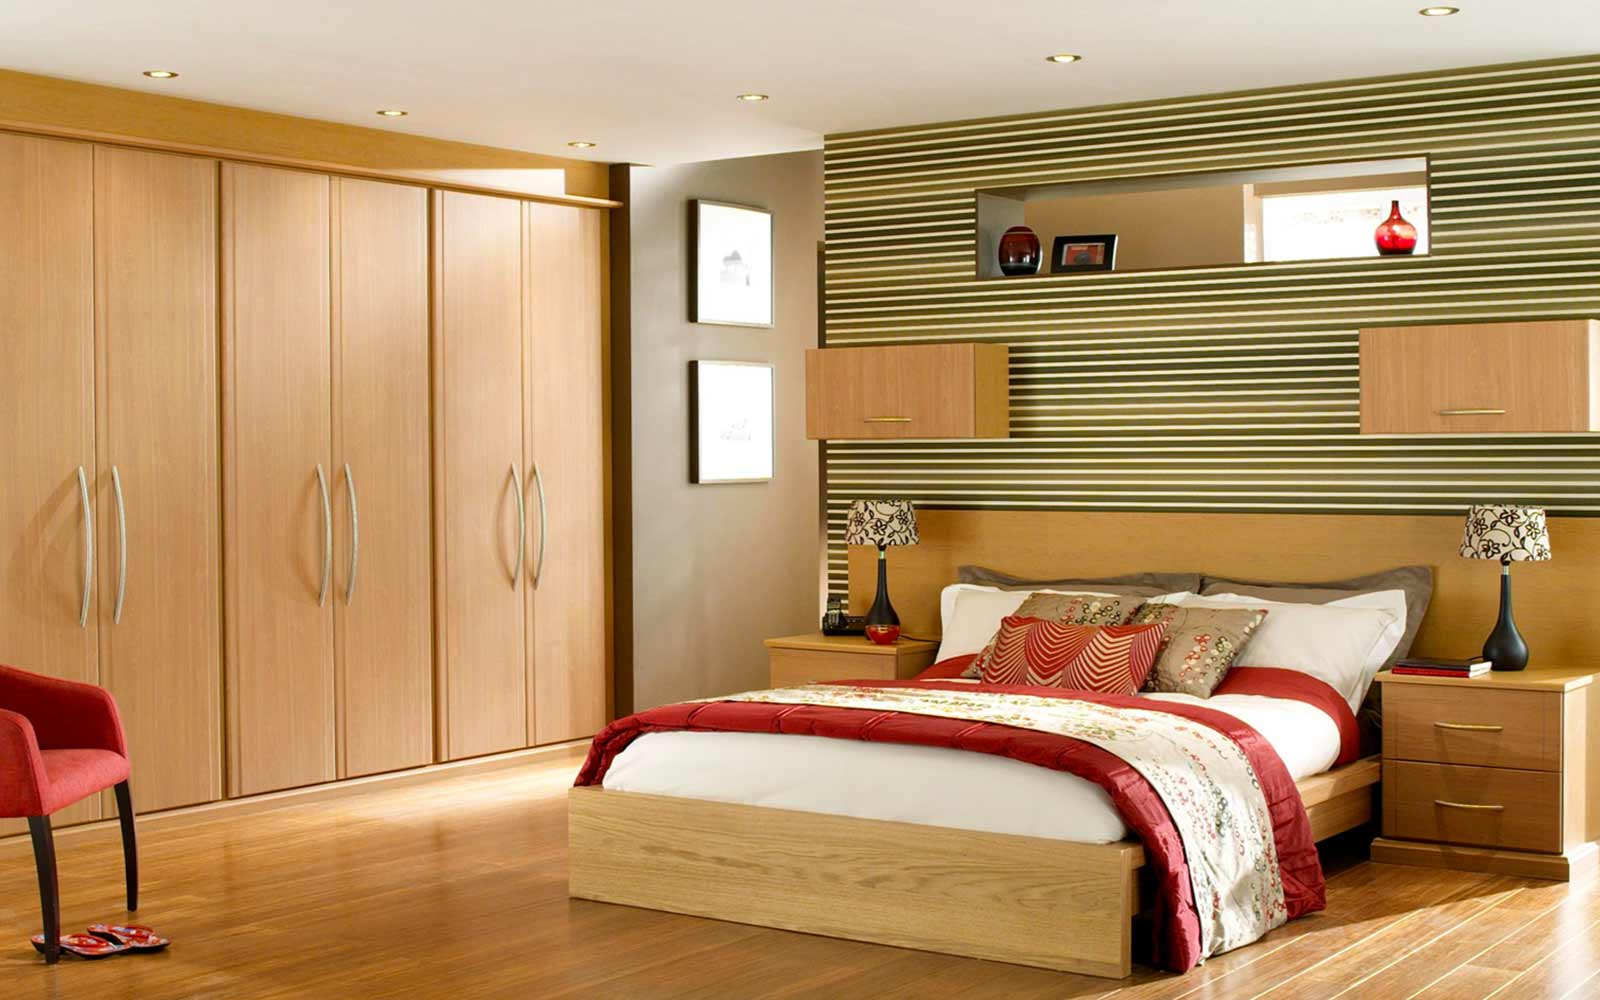 35 images of wardrobe designs for bedrooms for Bedroom painting ideas india